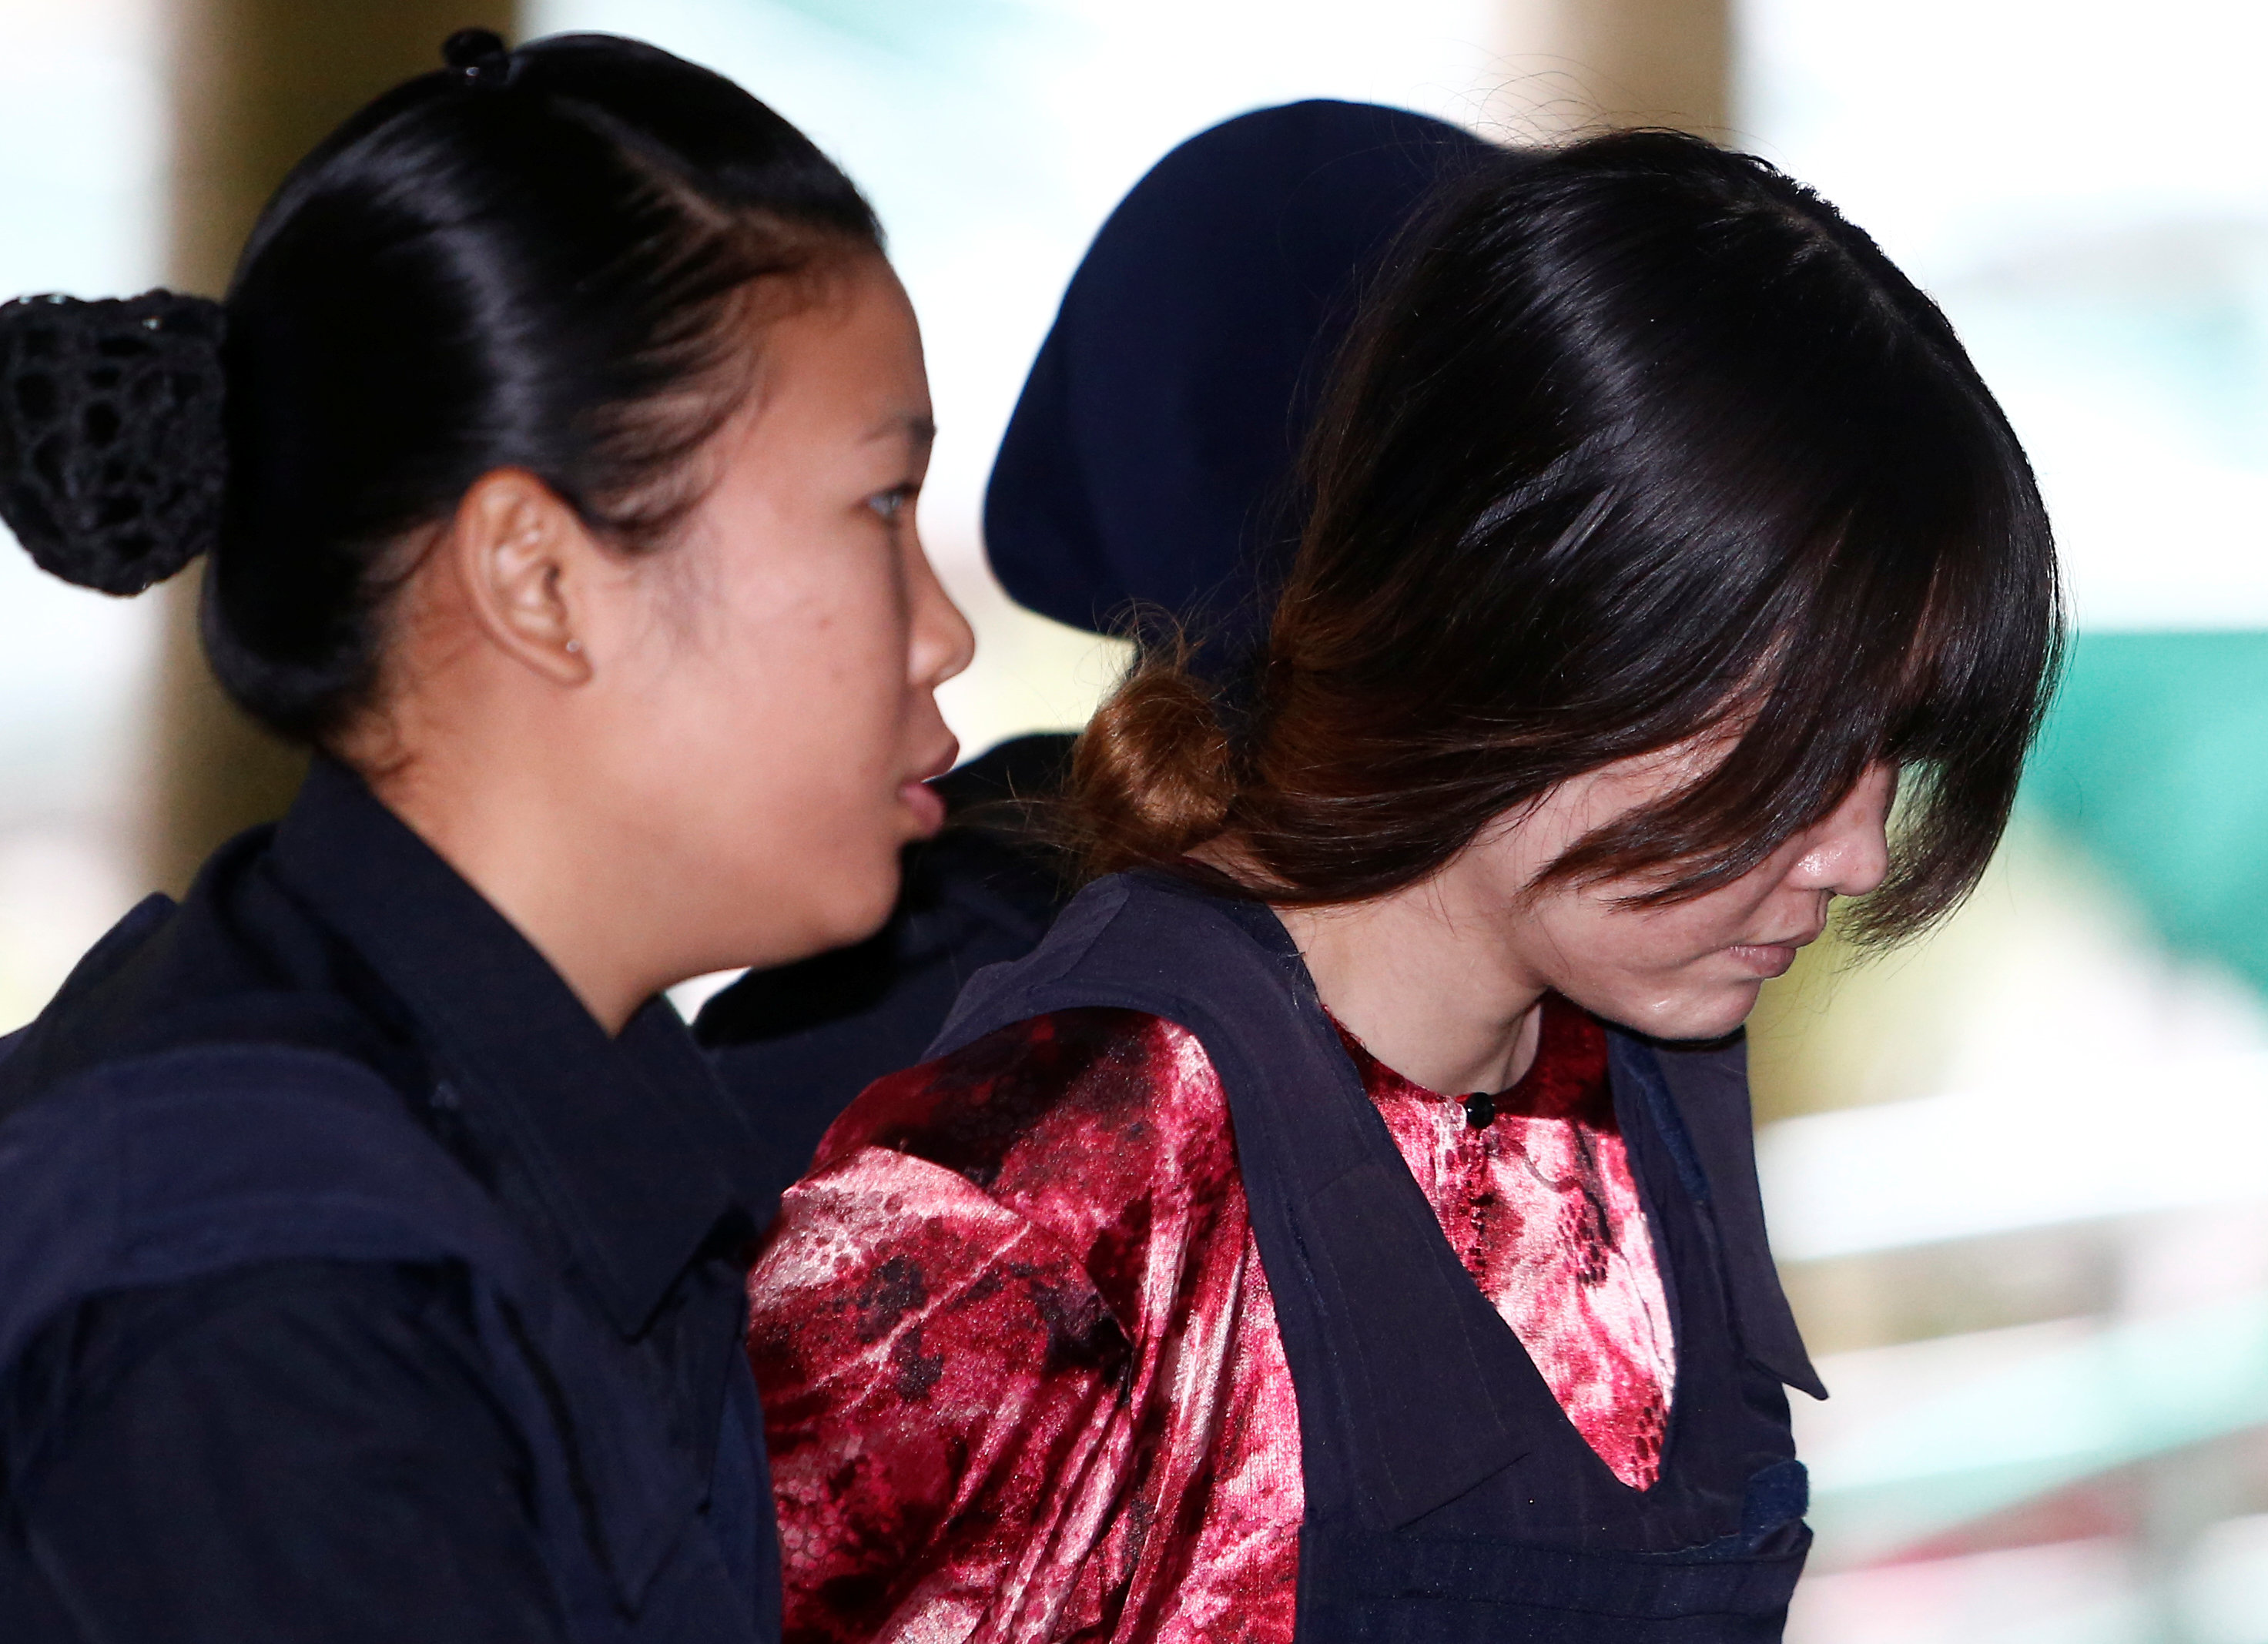 Vietnamese Doan Thi Huong, who is on trial for the killing of Kim Jong Nam, the estranged half-brother of North Korea's leader, is escorted as she arrives at the Shah Alam High Court on the outskirts of Kuala Lumpur, Malaysia January 22, 2018.